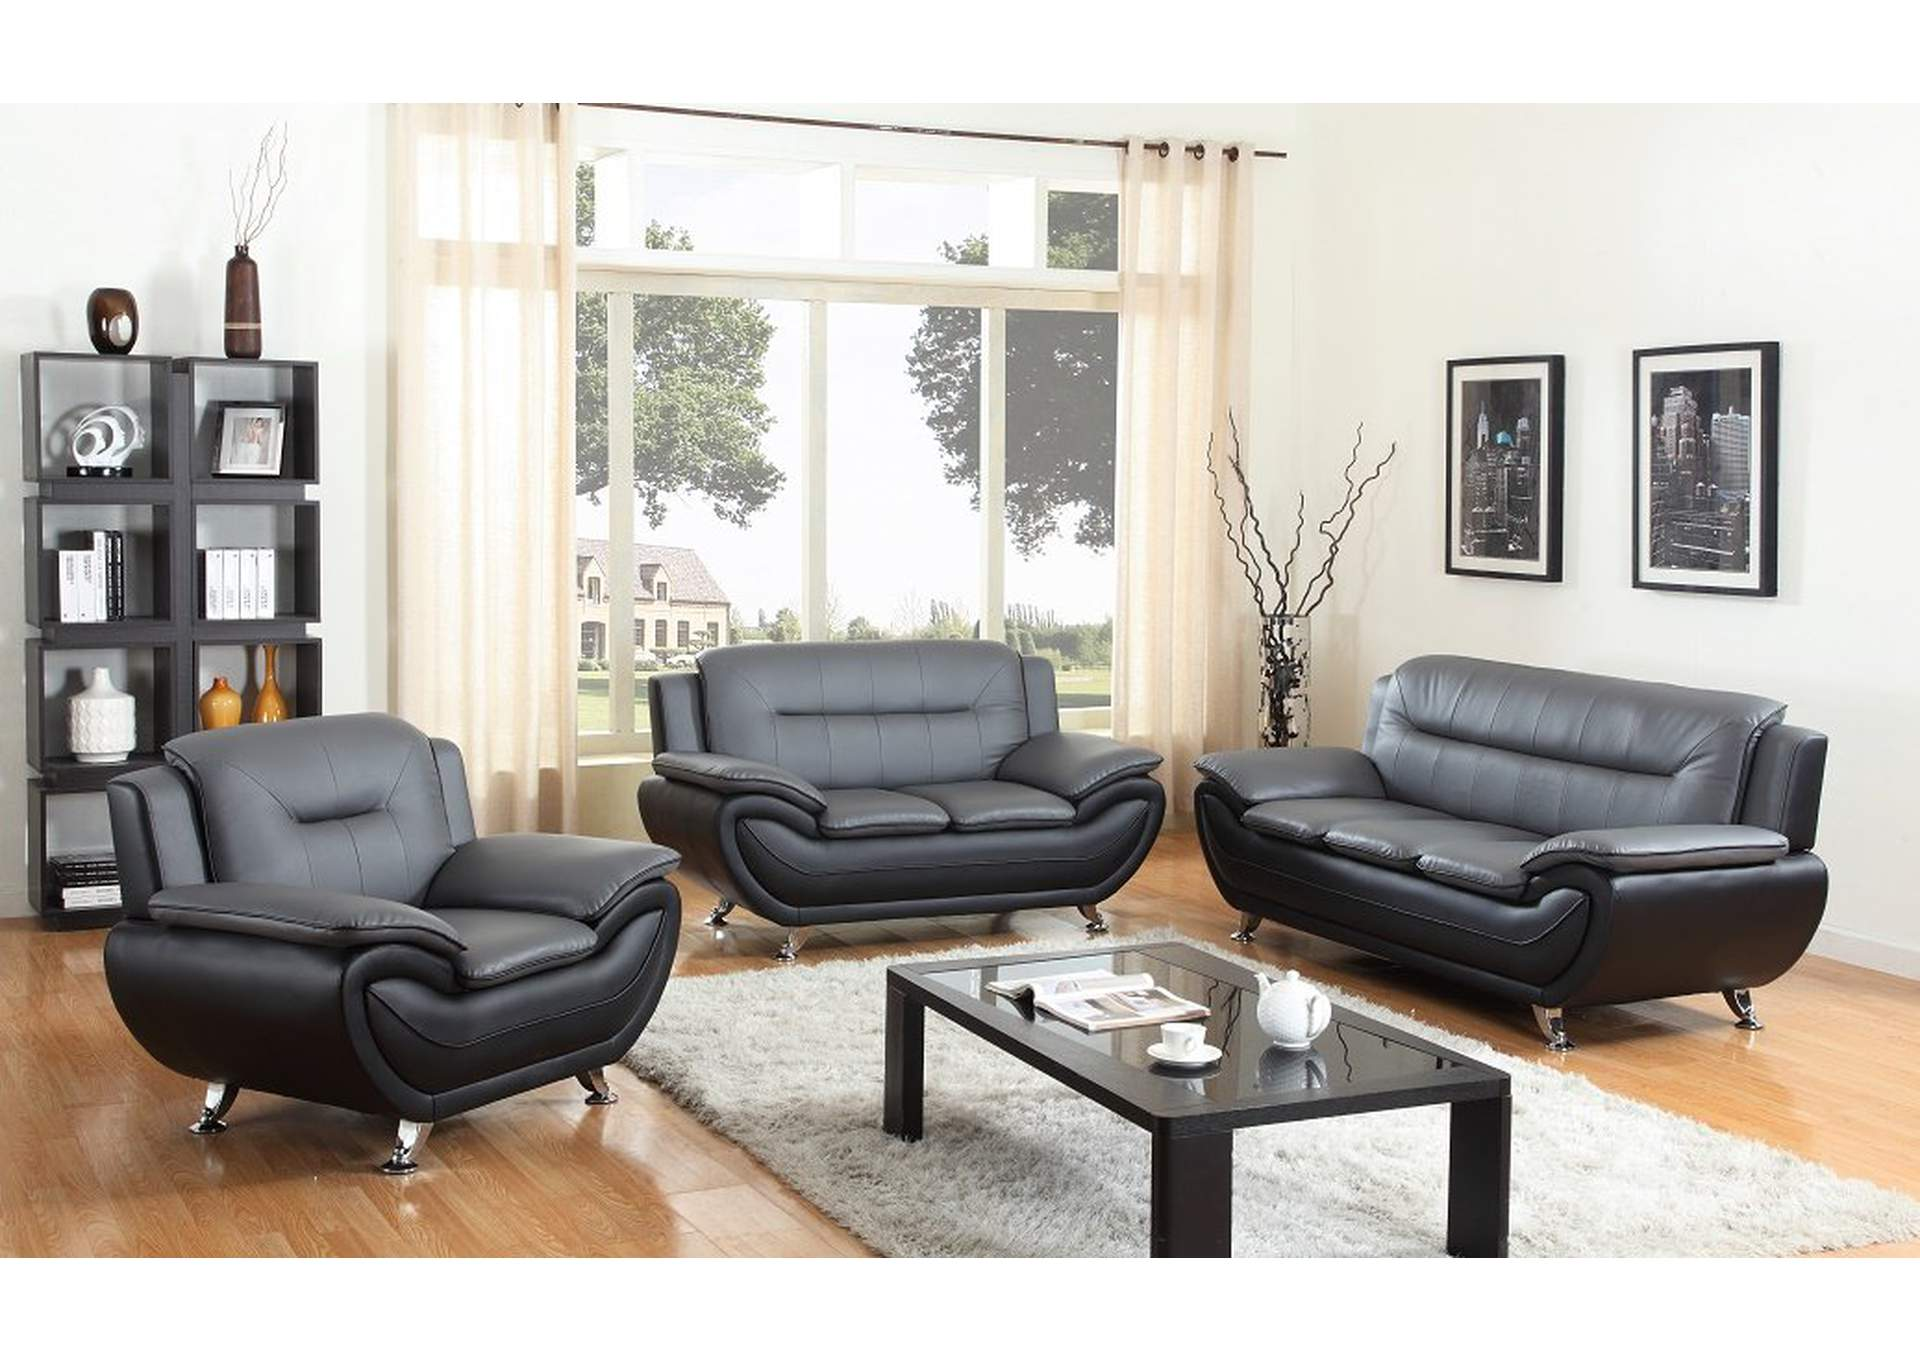 897987 Grey/Black Leather Sofa & Loveseat w/Chrome Legs